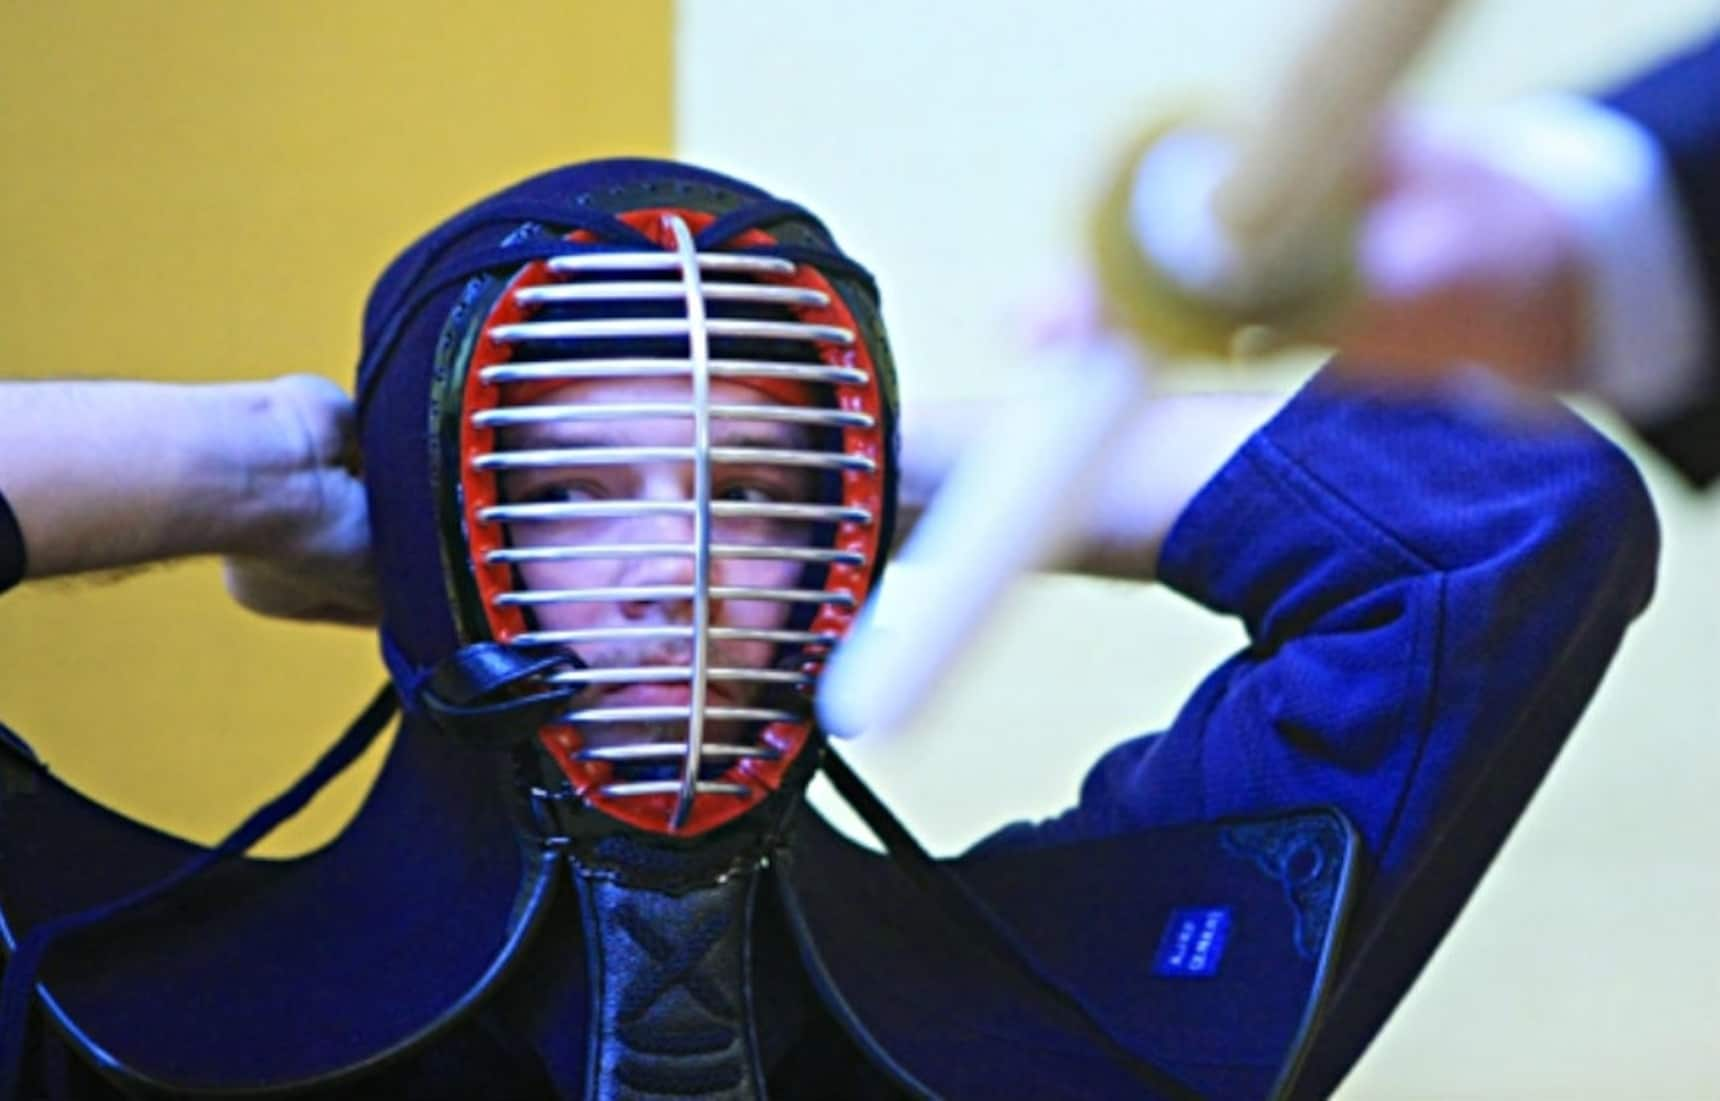 Beginner-Friendly Kendo Lesson in English